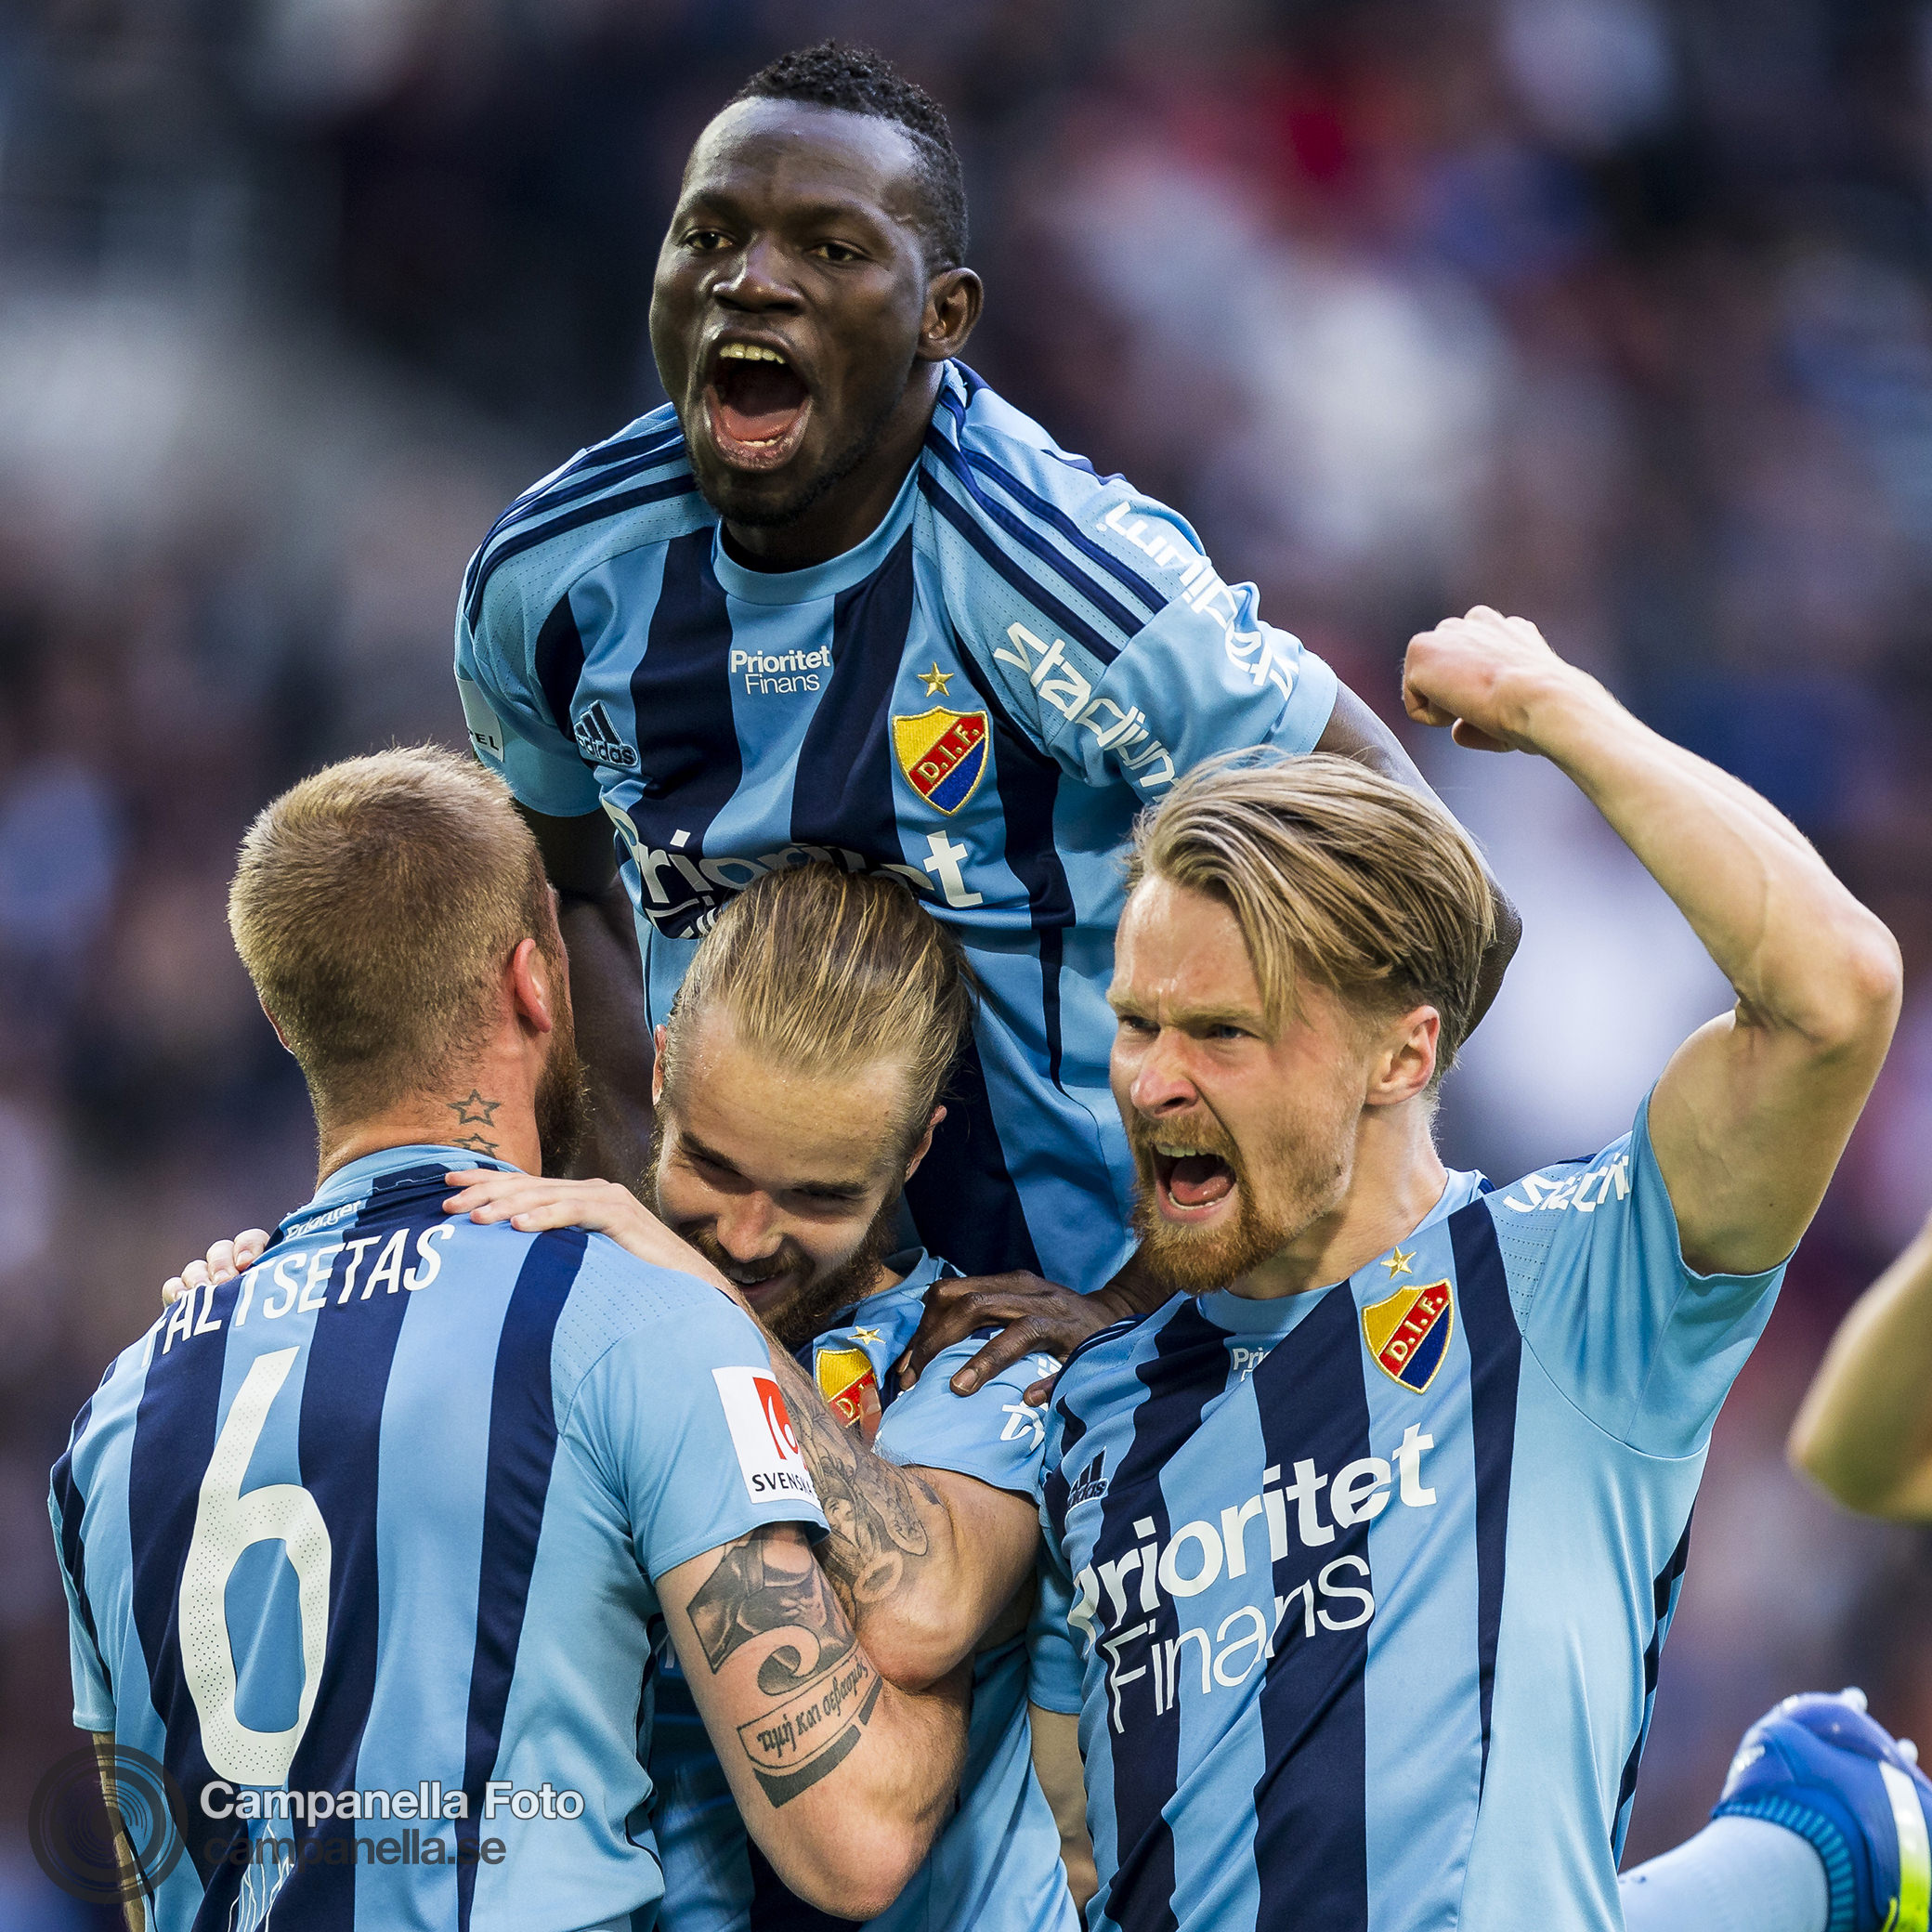 Djurgården gets back to winning - Michael Campanella Photography